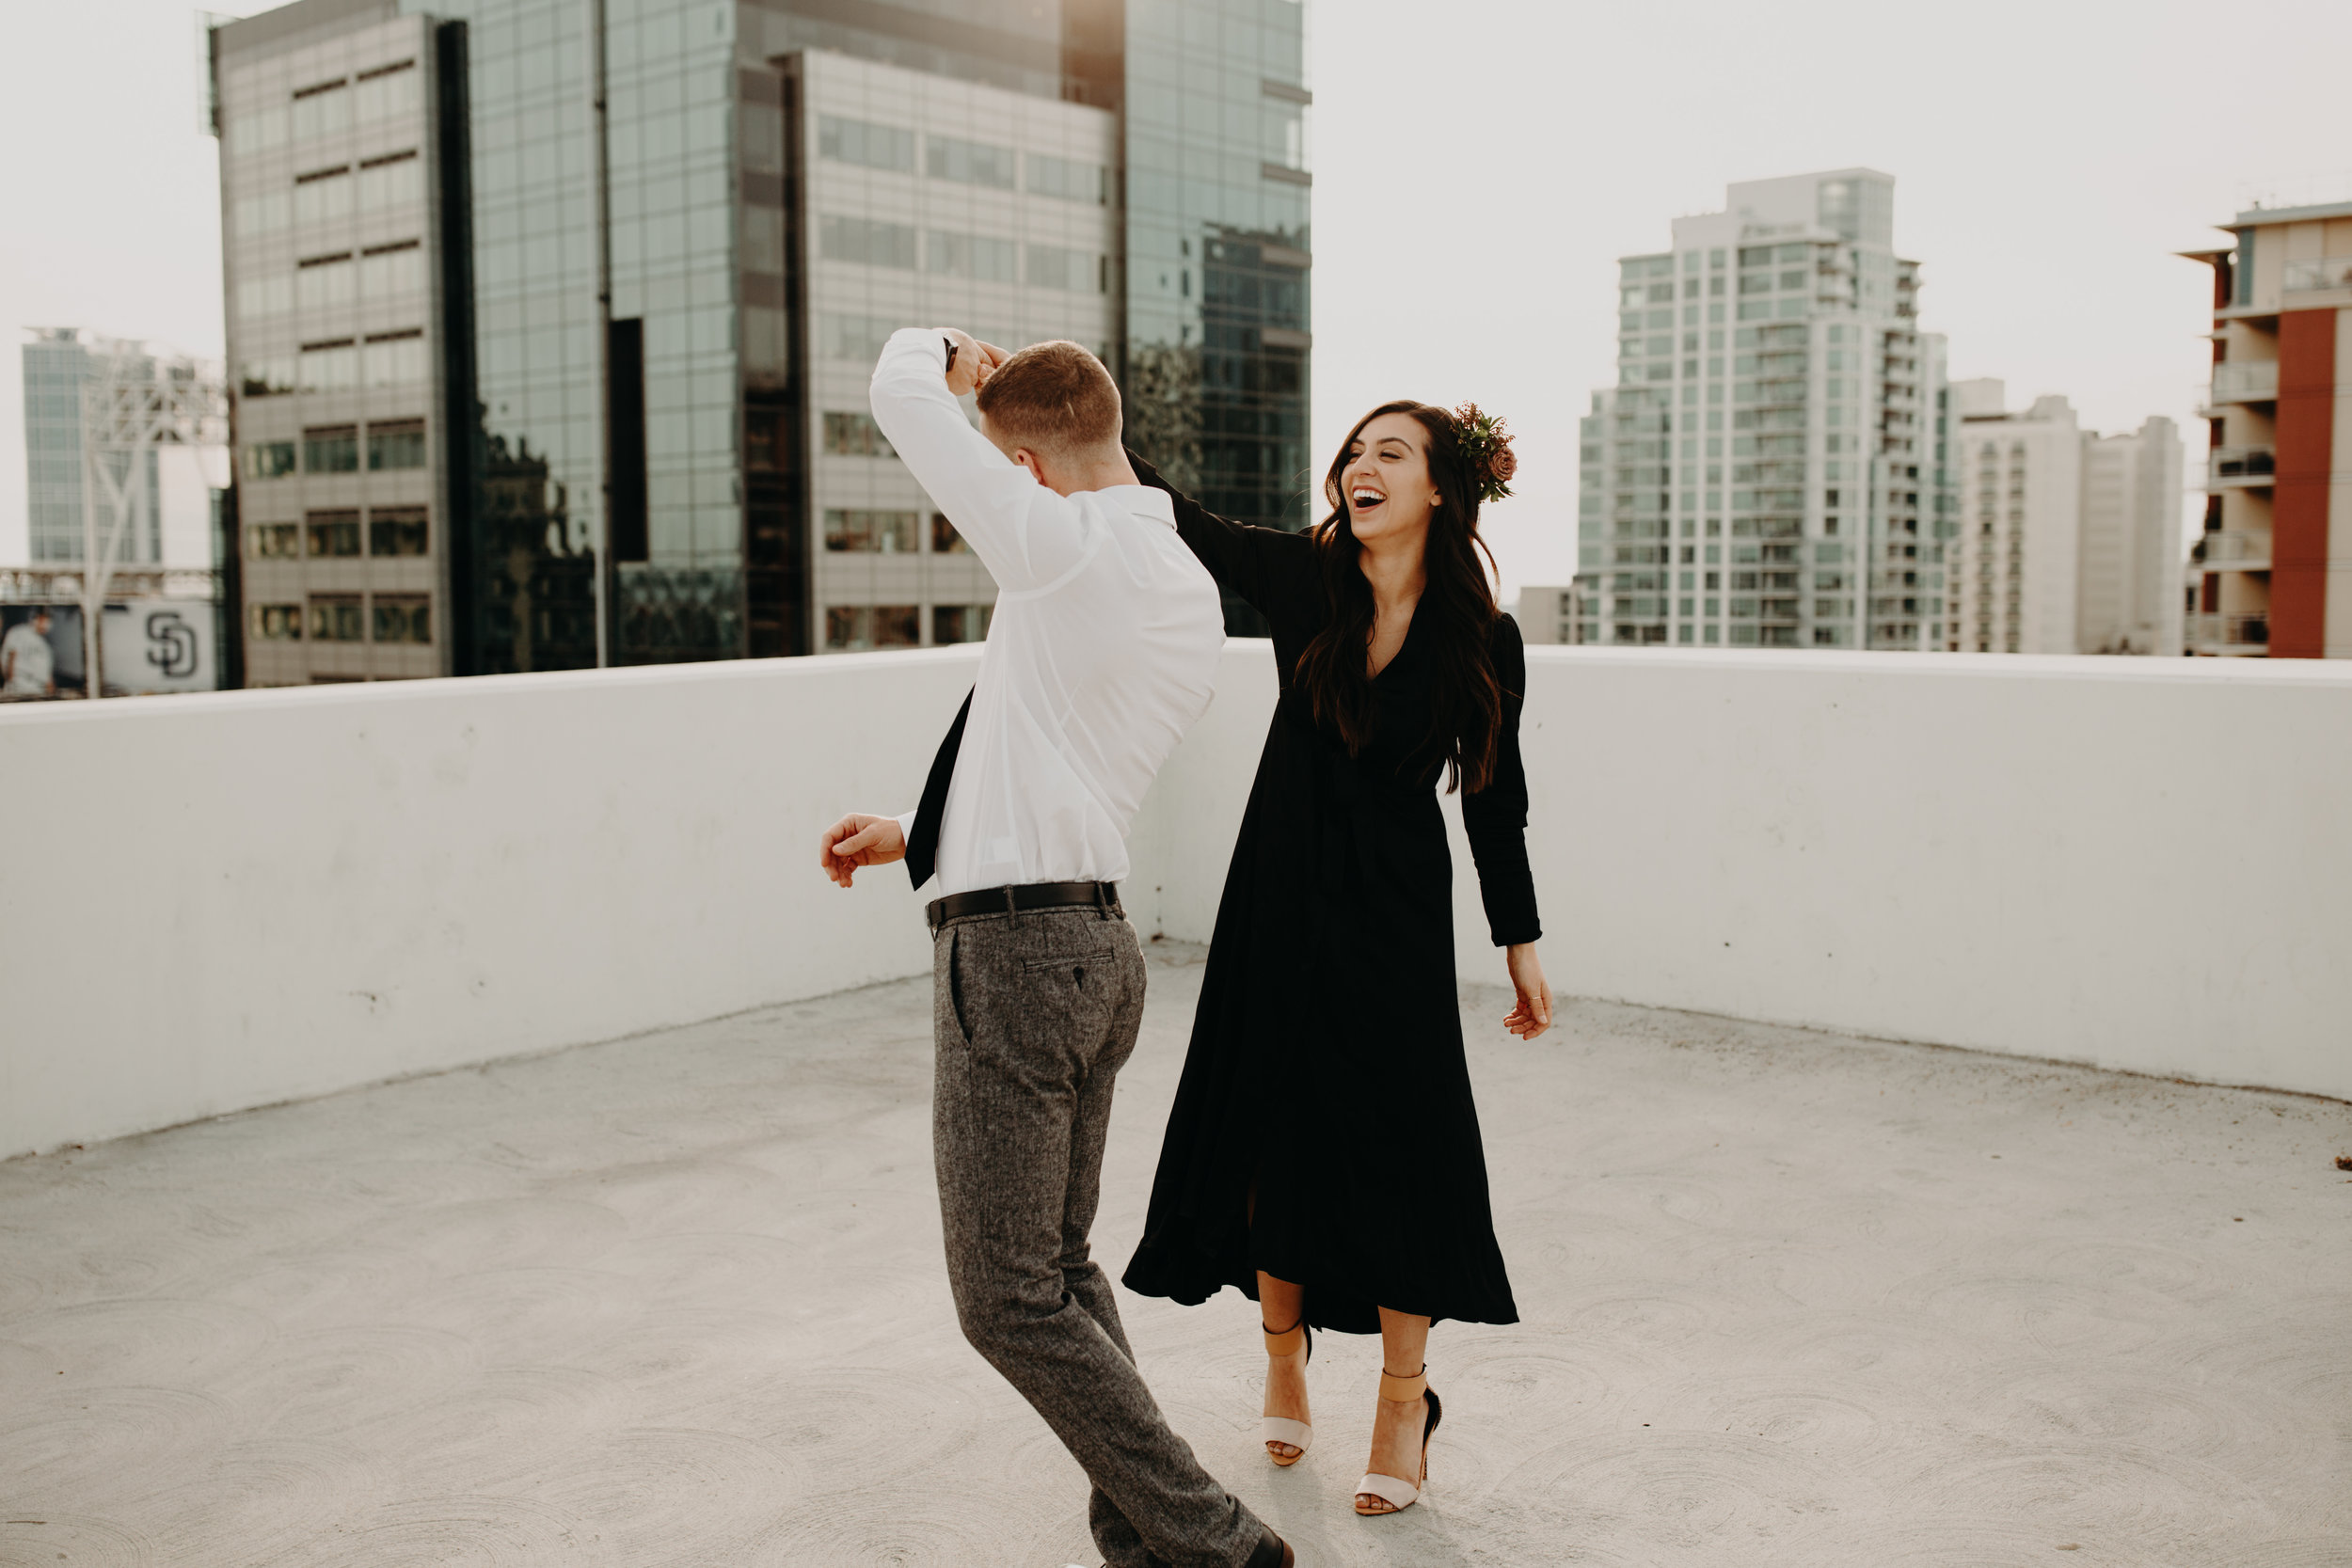 Rooftop San Diego Engagement Session Emilia & Christopher Emily Magers Photography-11.jpg